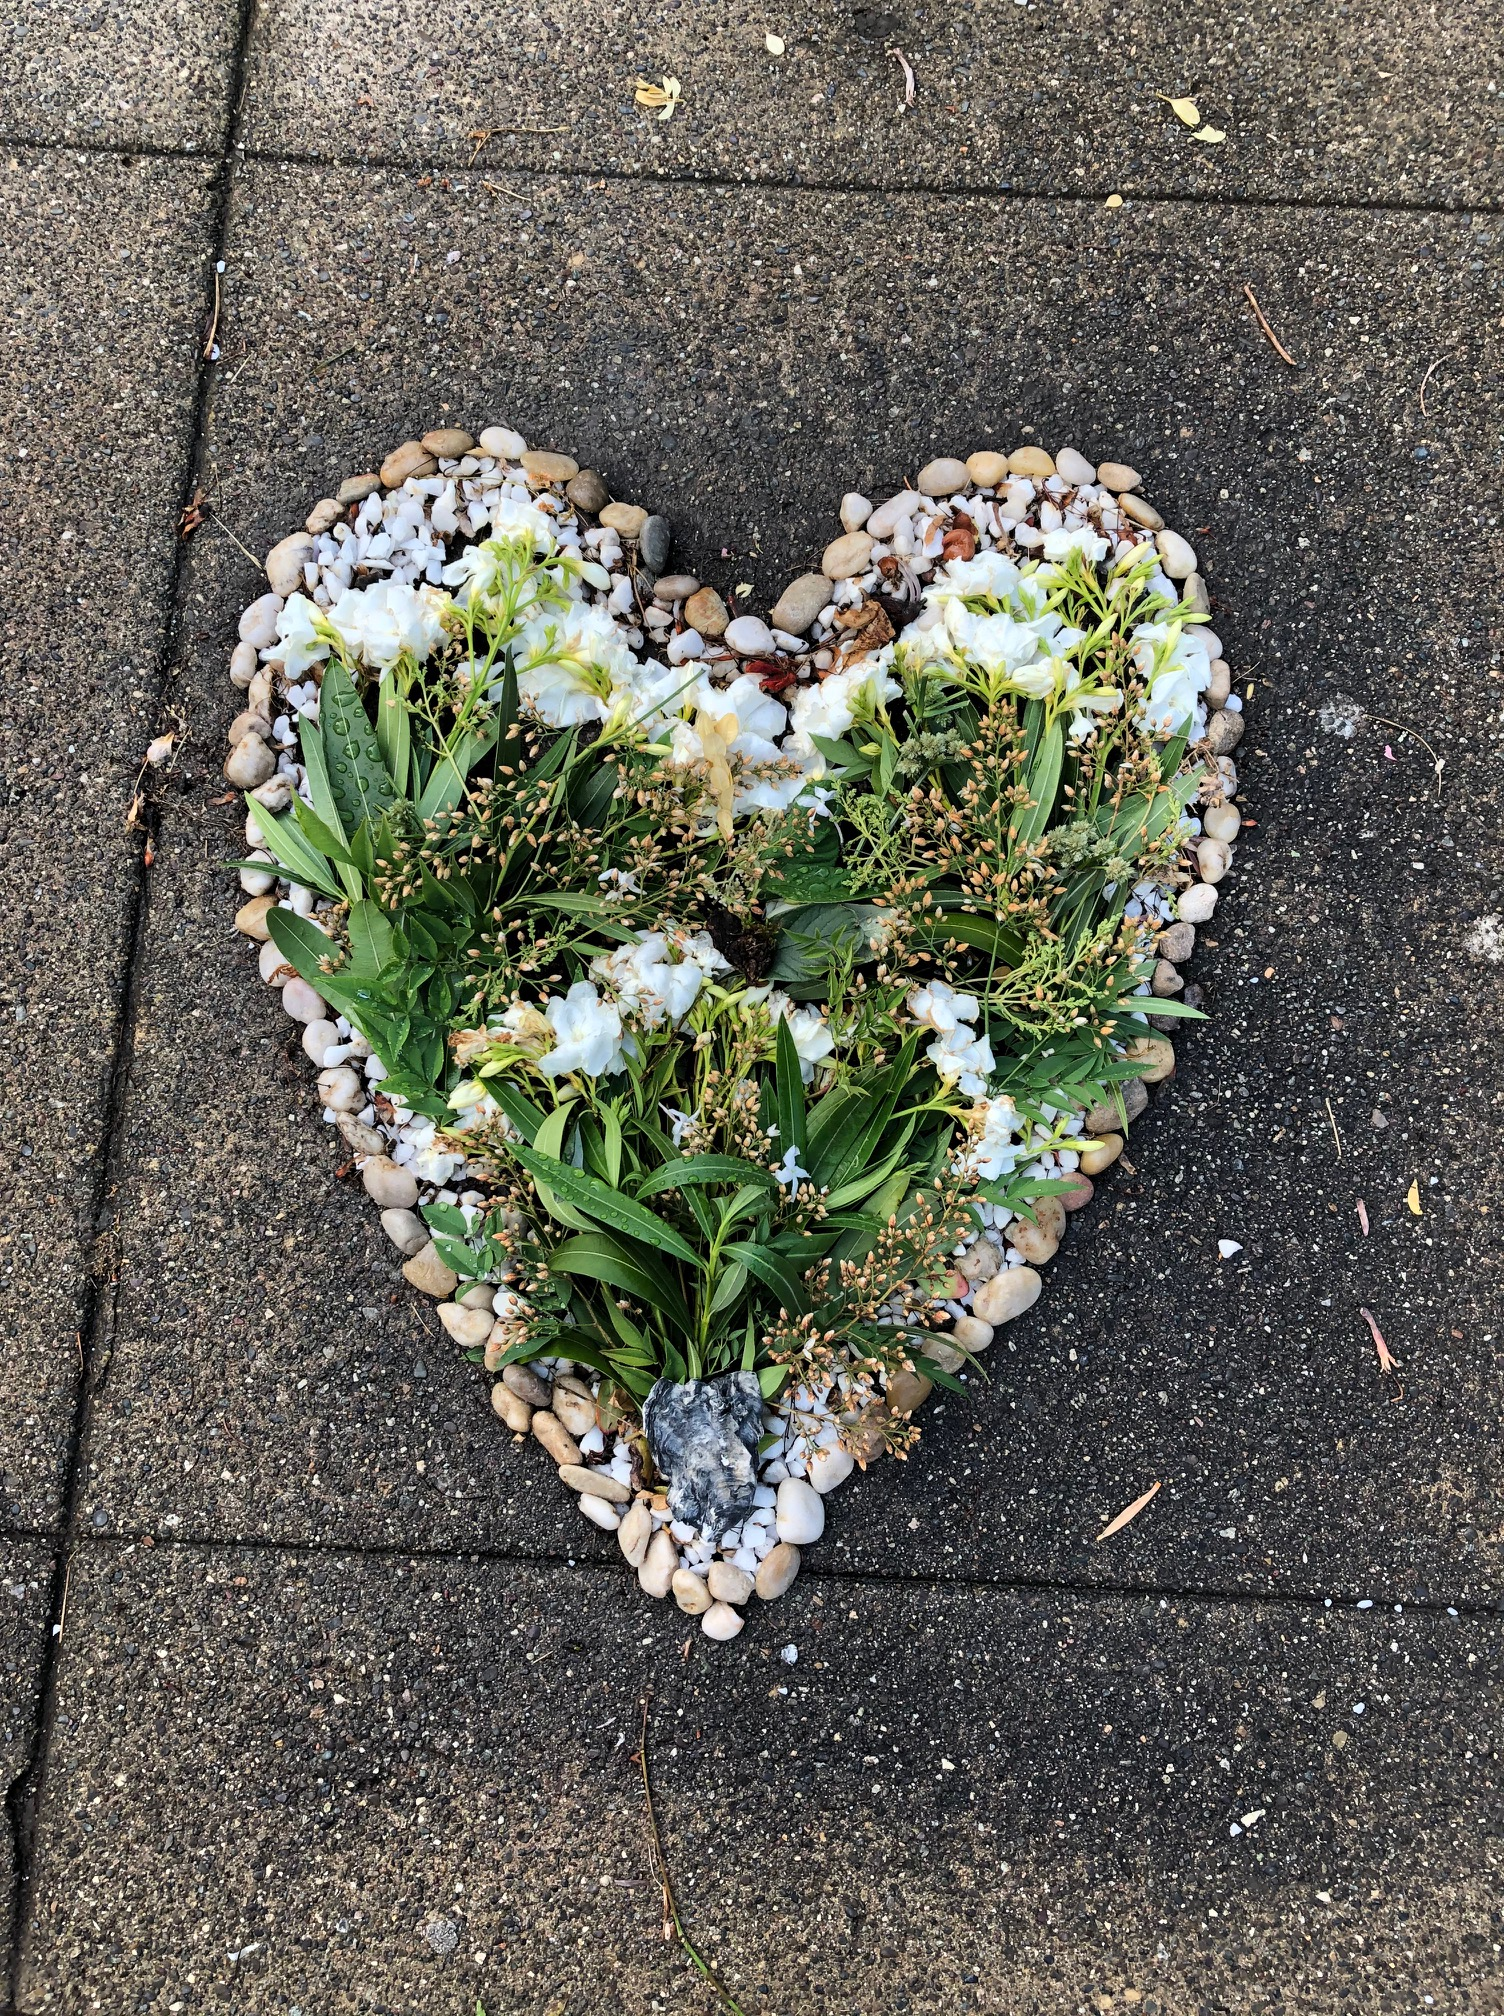 spreading love in the neighborhood